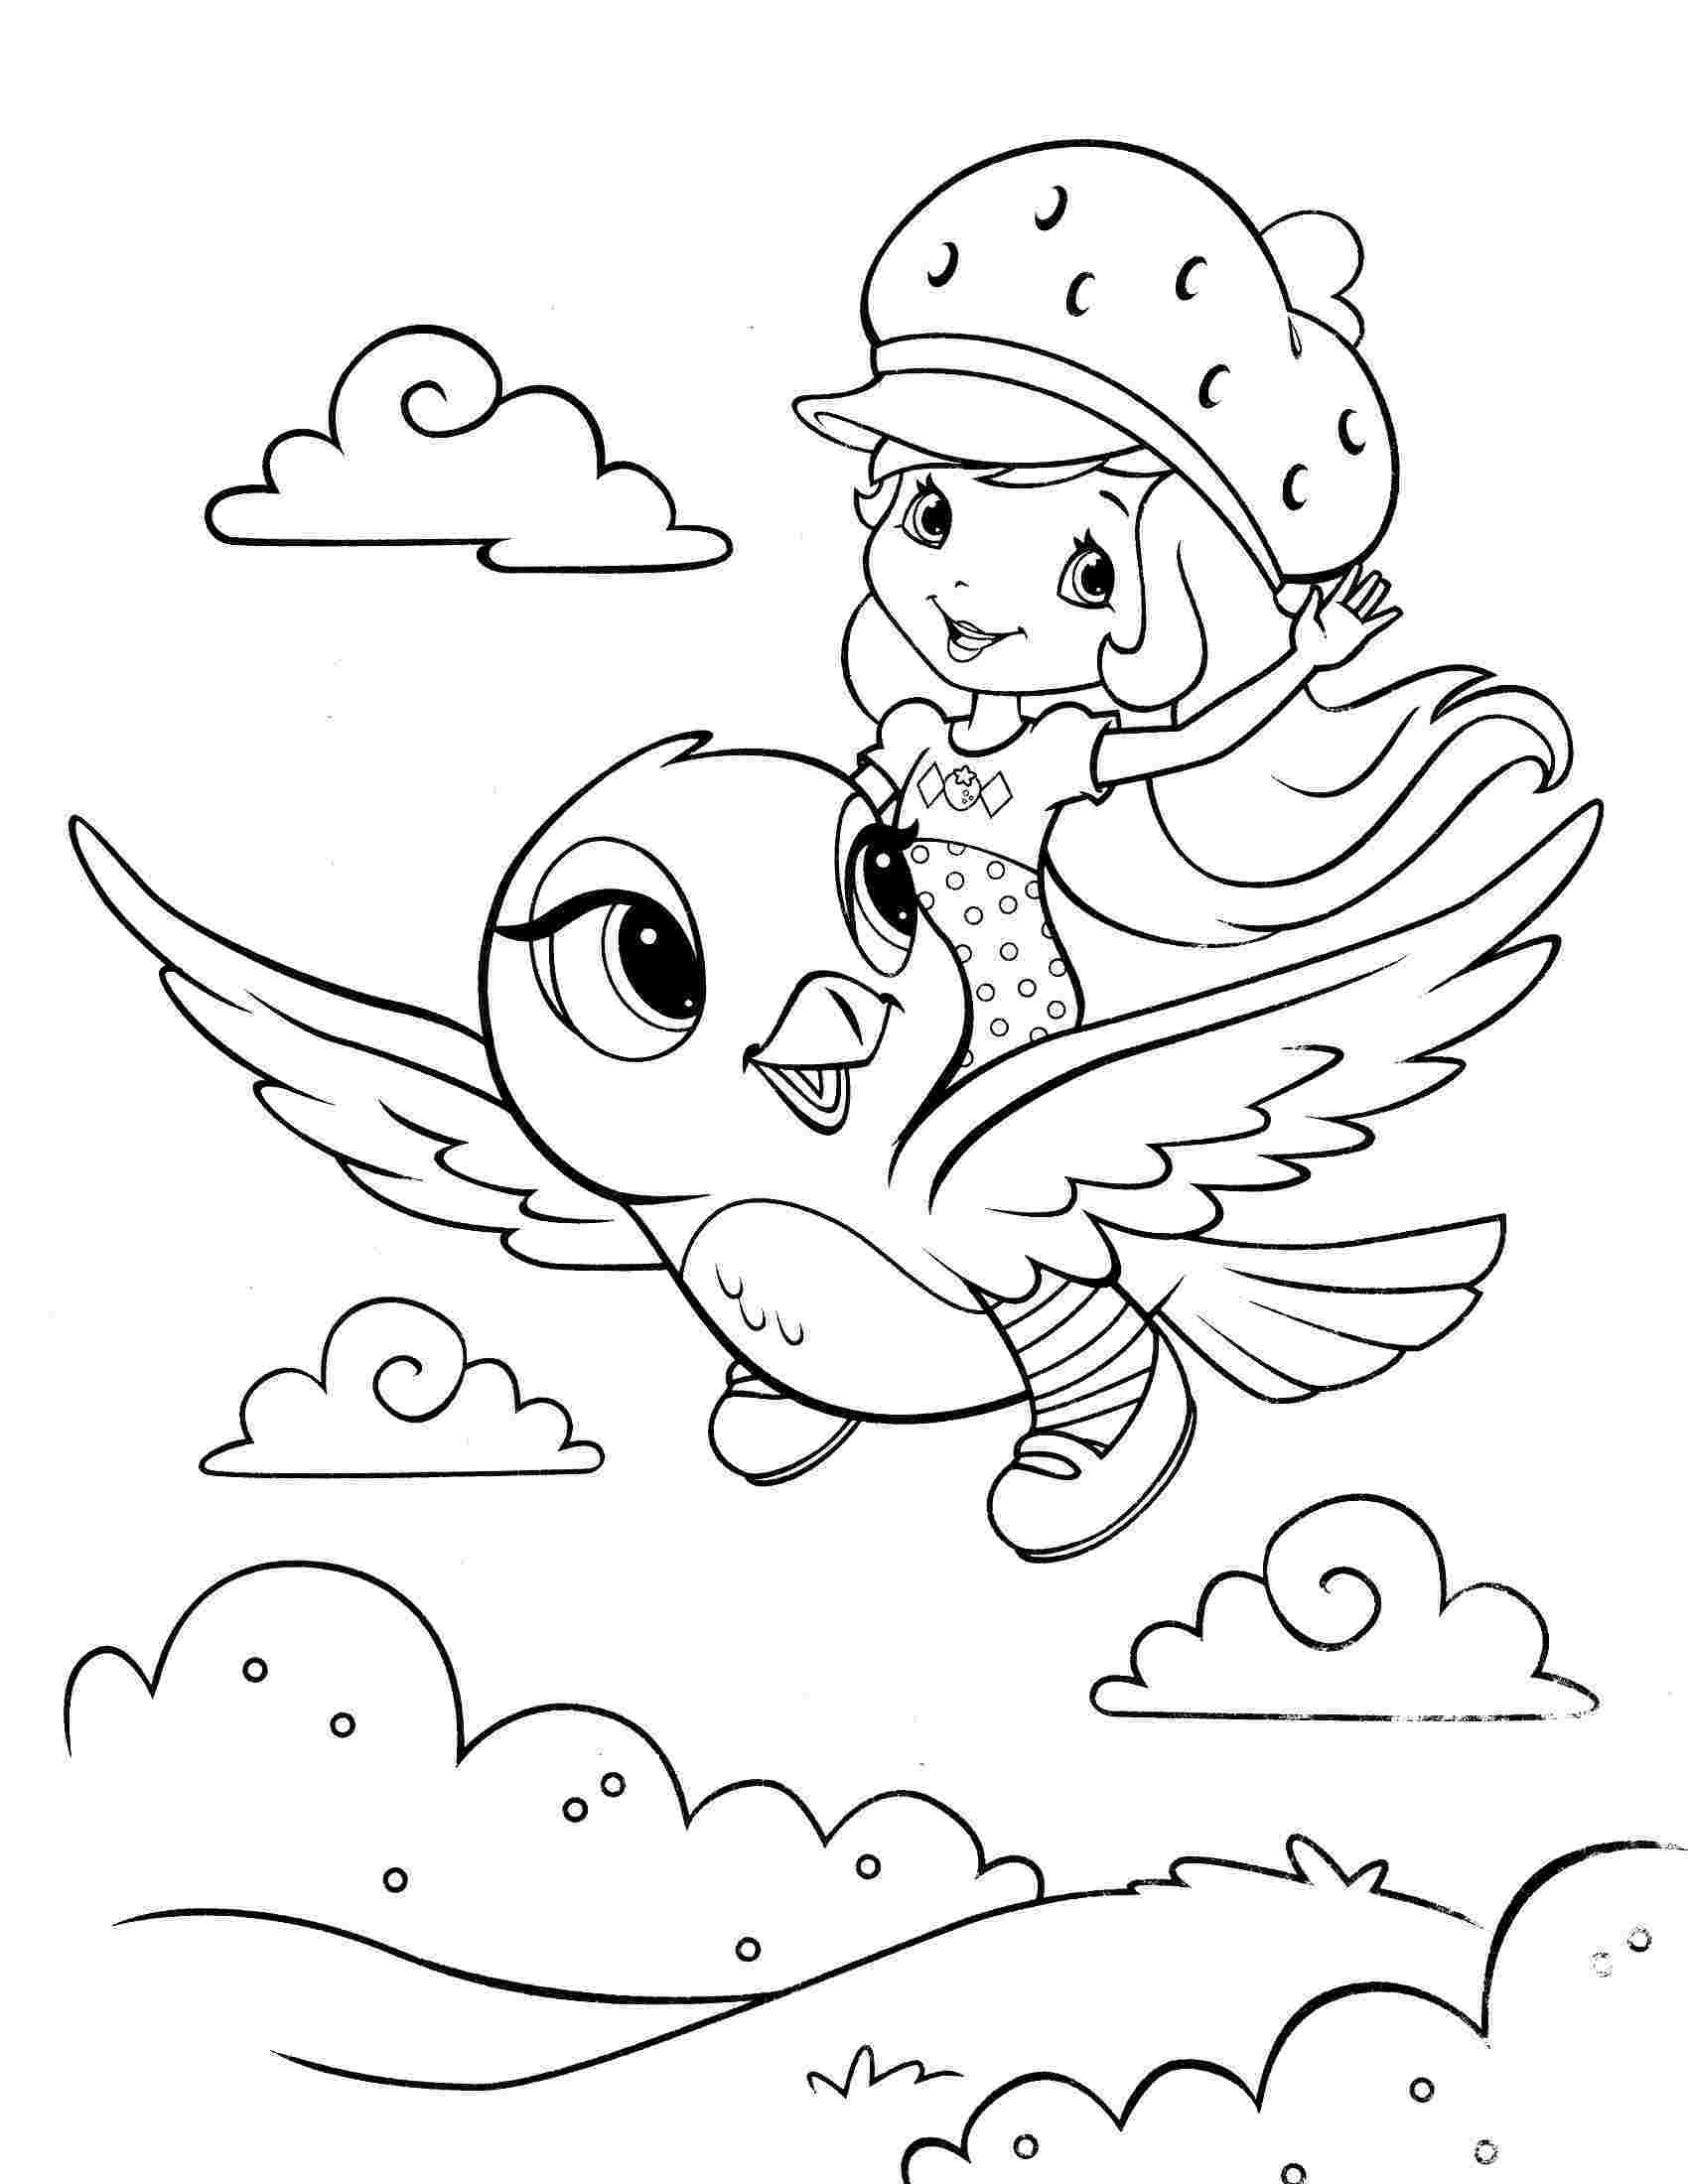 colouring pages strawberry shortcake strawberry shortcake coloring pages coloring pages shortcake strawberry colouring pages